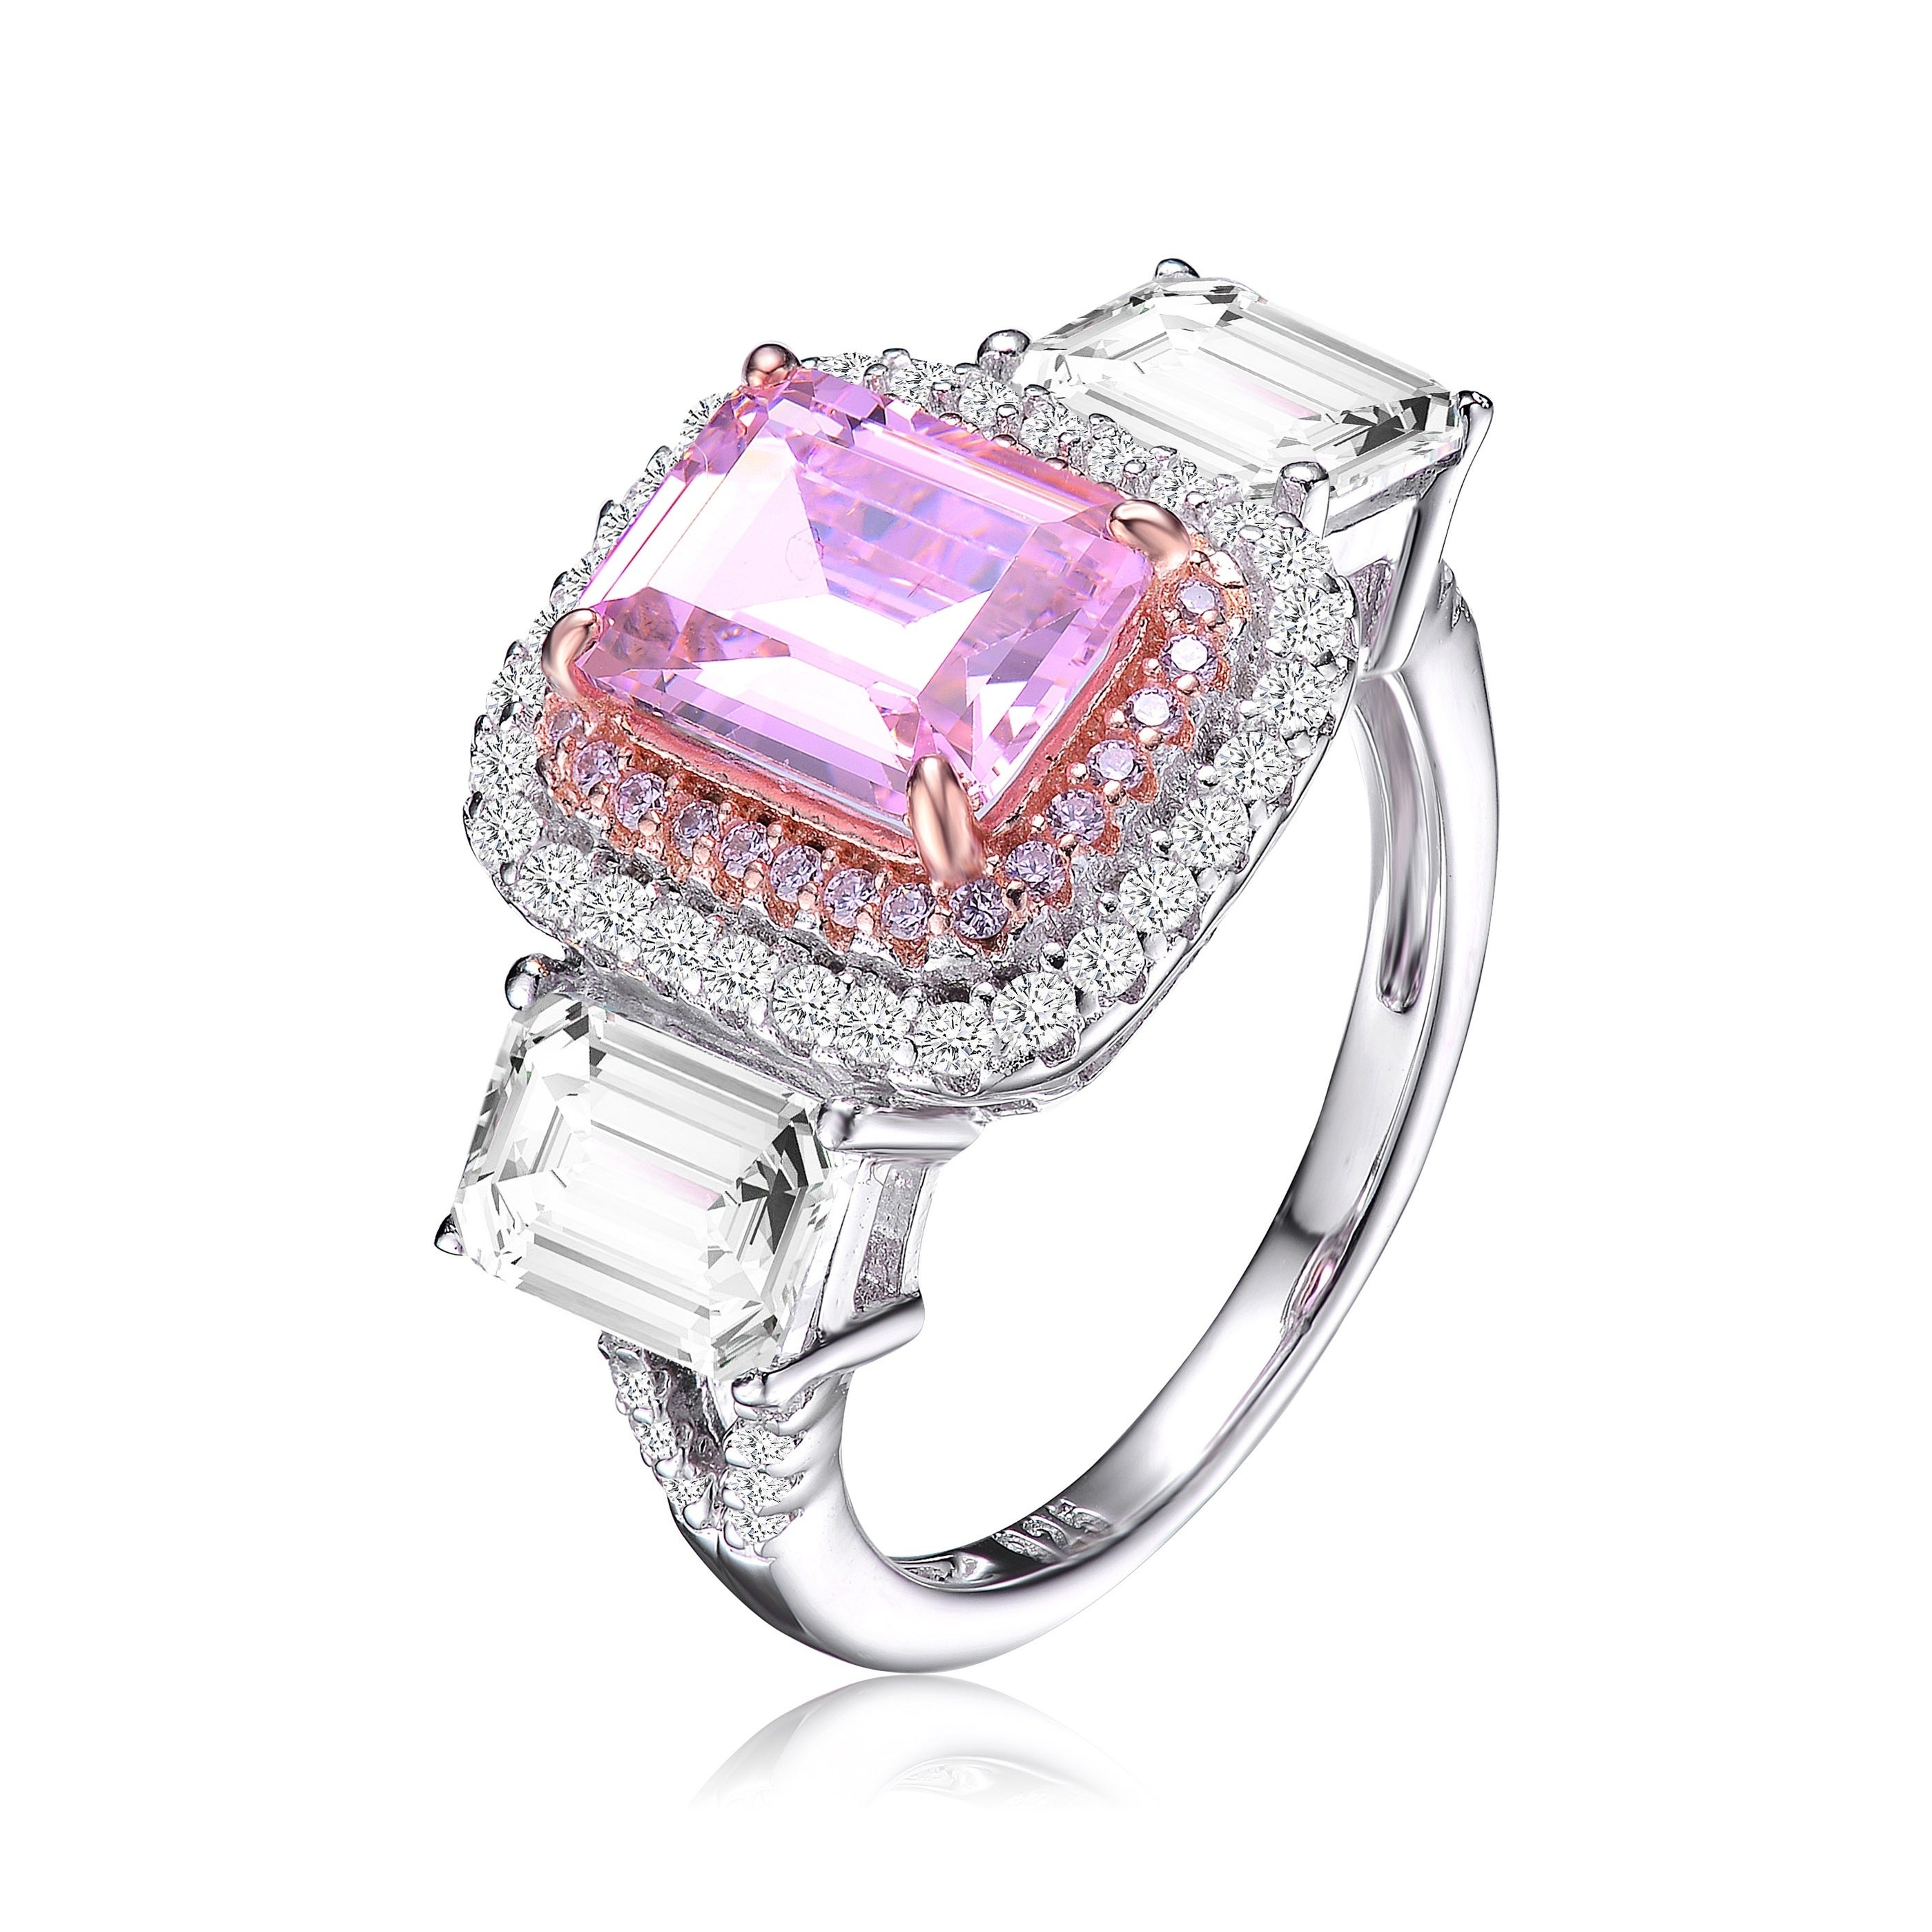 Collette Z Sterling Silver With Rhodium And Rose Gold Plated Pink And Clear Radiant Cubic Zirconias Haloed Three Stone Ring Regarding Newest Clear Three Stone Rings (View 17 of 25)